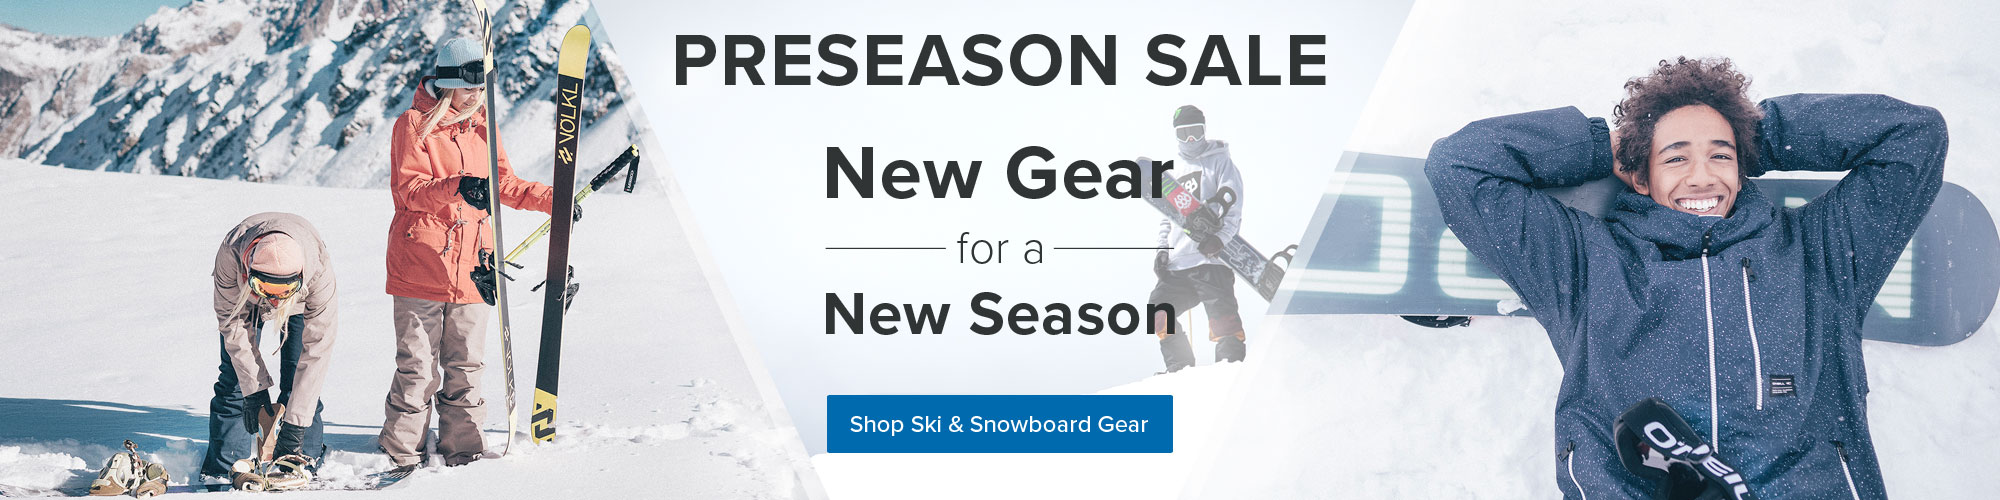 Latest - Ski - Sbowboard Gear - Preseason Sale - Shop Now